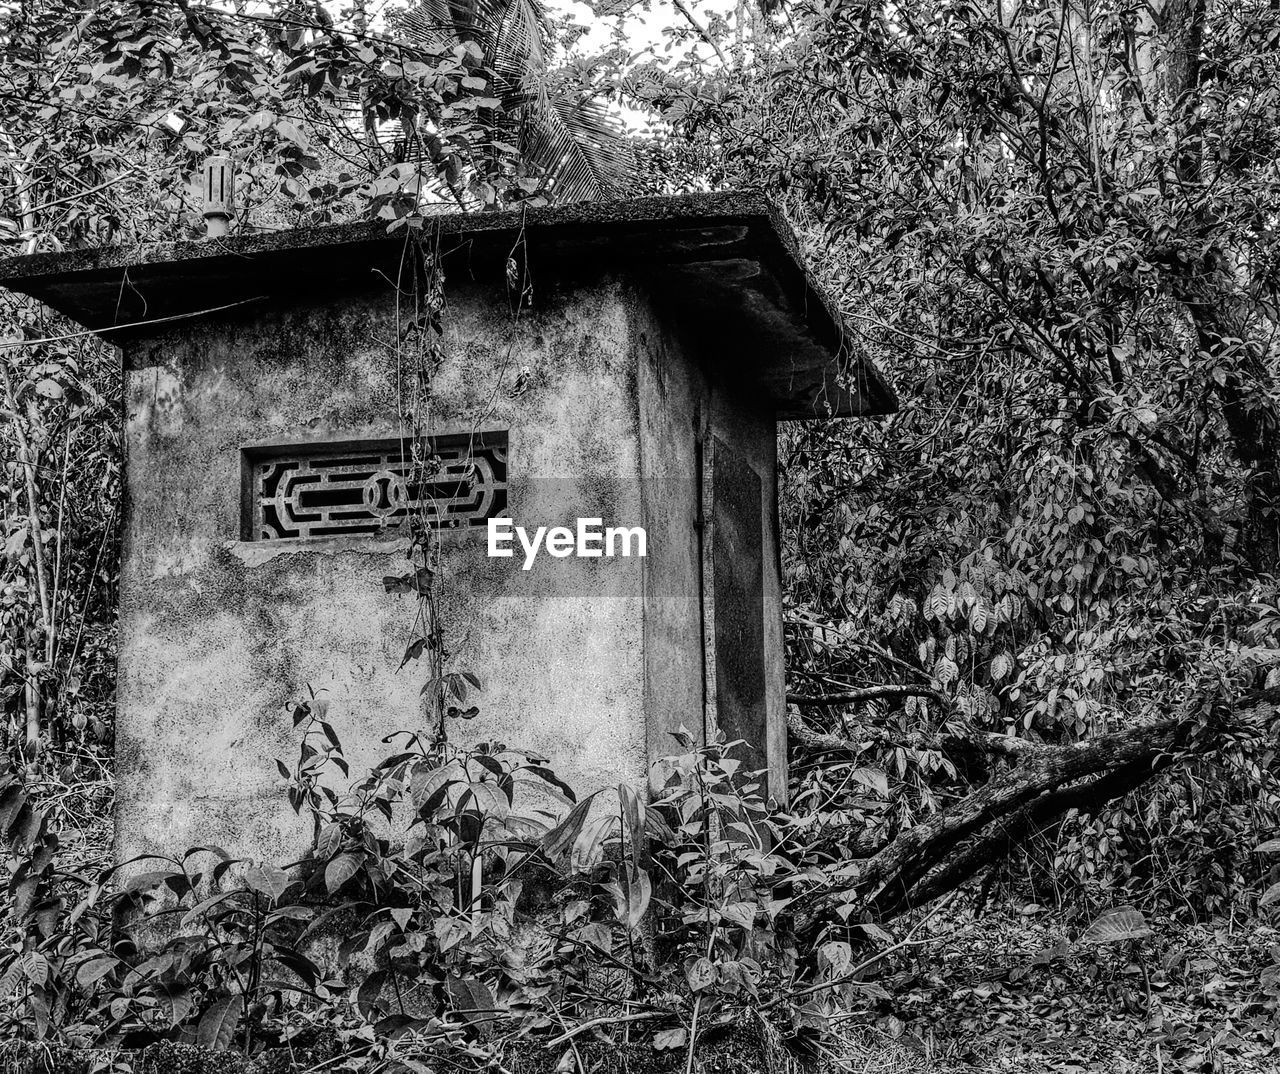 plant, architecture, built structure, tree, no people, land, abandoned, nature, day, old, building exterior, wood - material, damaged, growth, outdoors, house, forest, field, building, plant part, deterioration, ruined